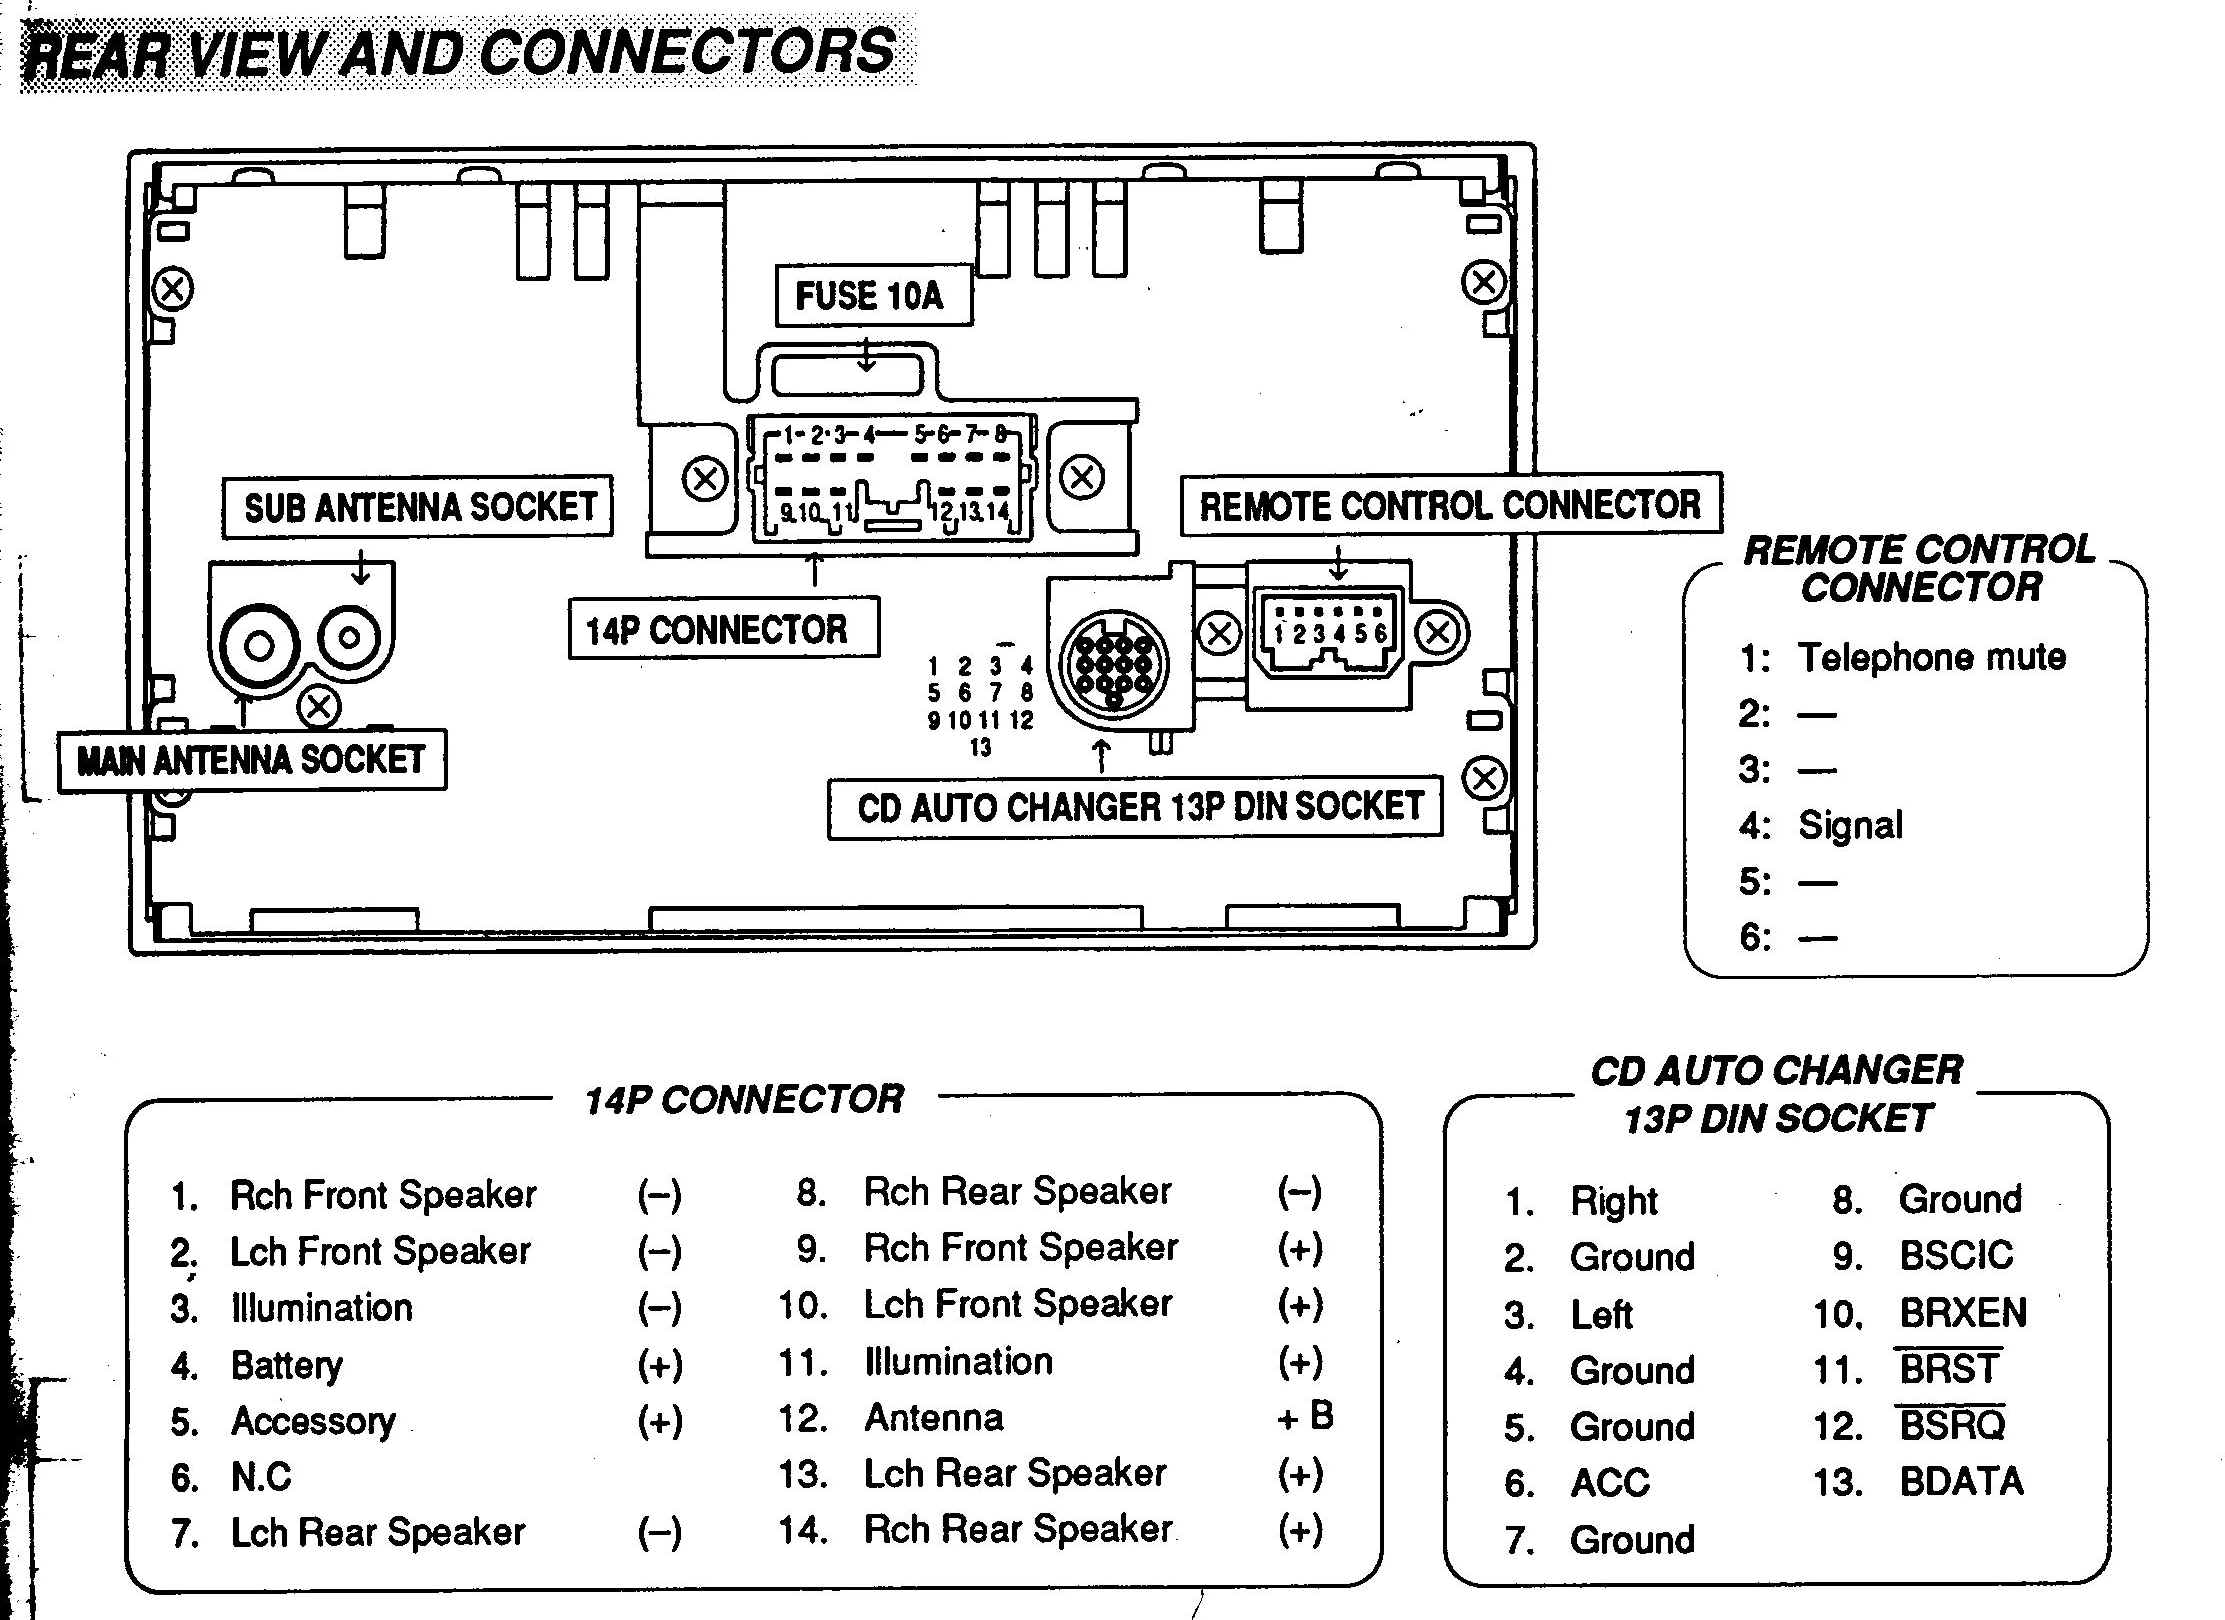 car audio wire diagram codes mitsubishi - factory car stereo, Wiring diagram